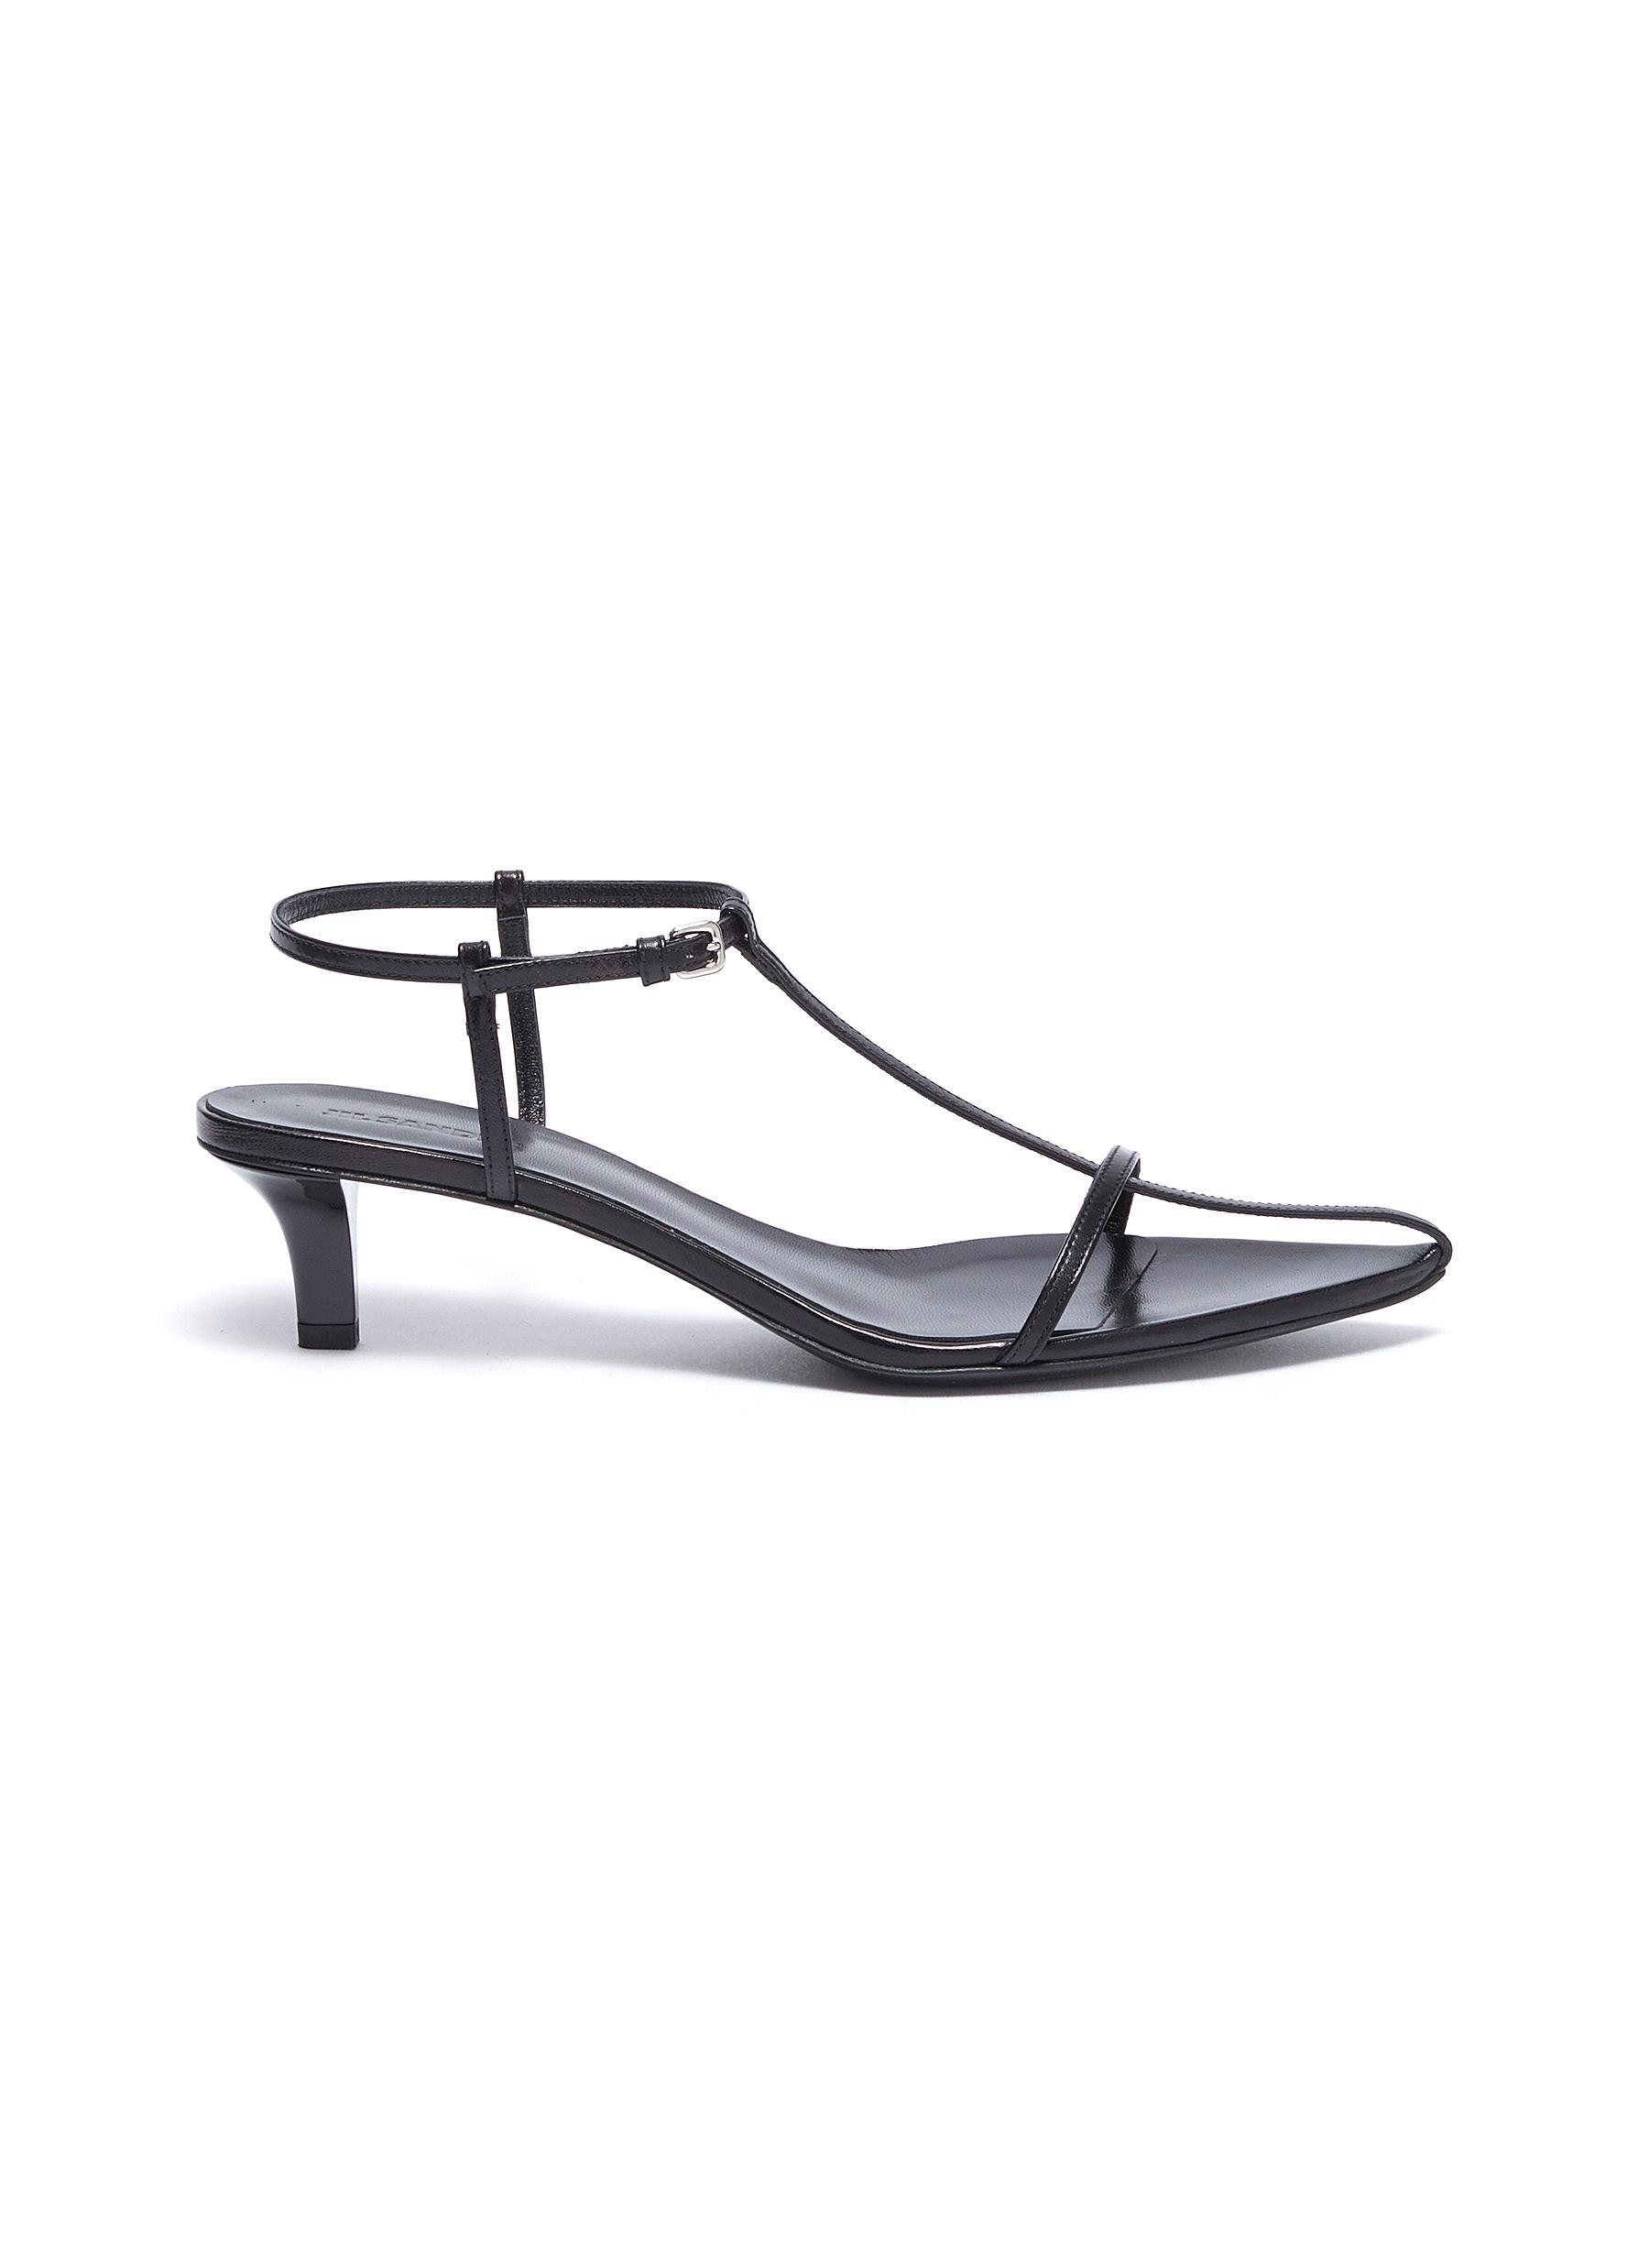 Strappy leather sandals by Jil Sander